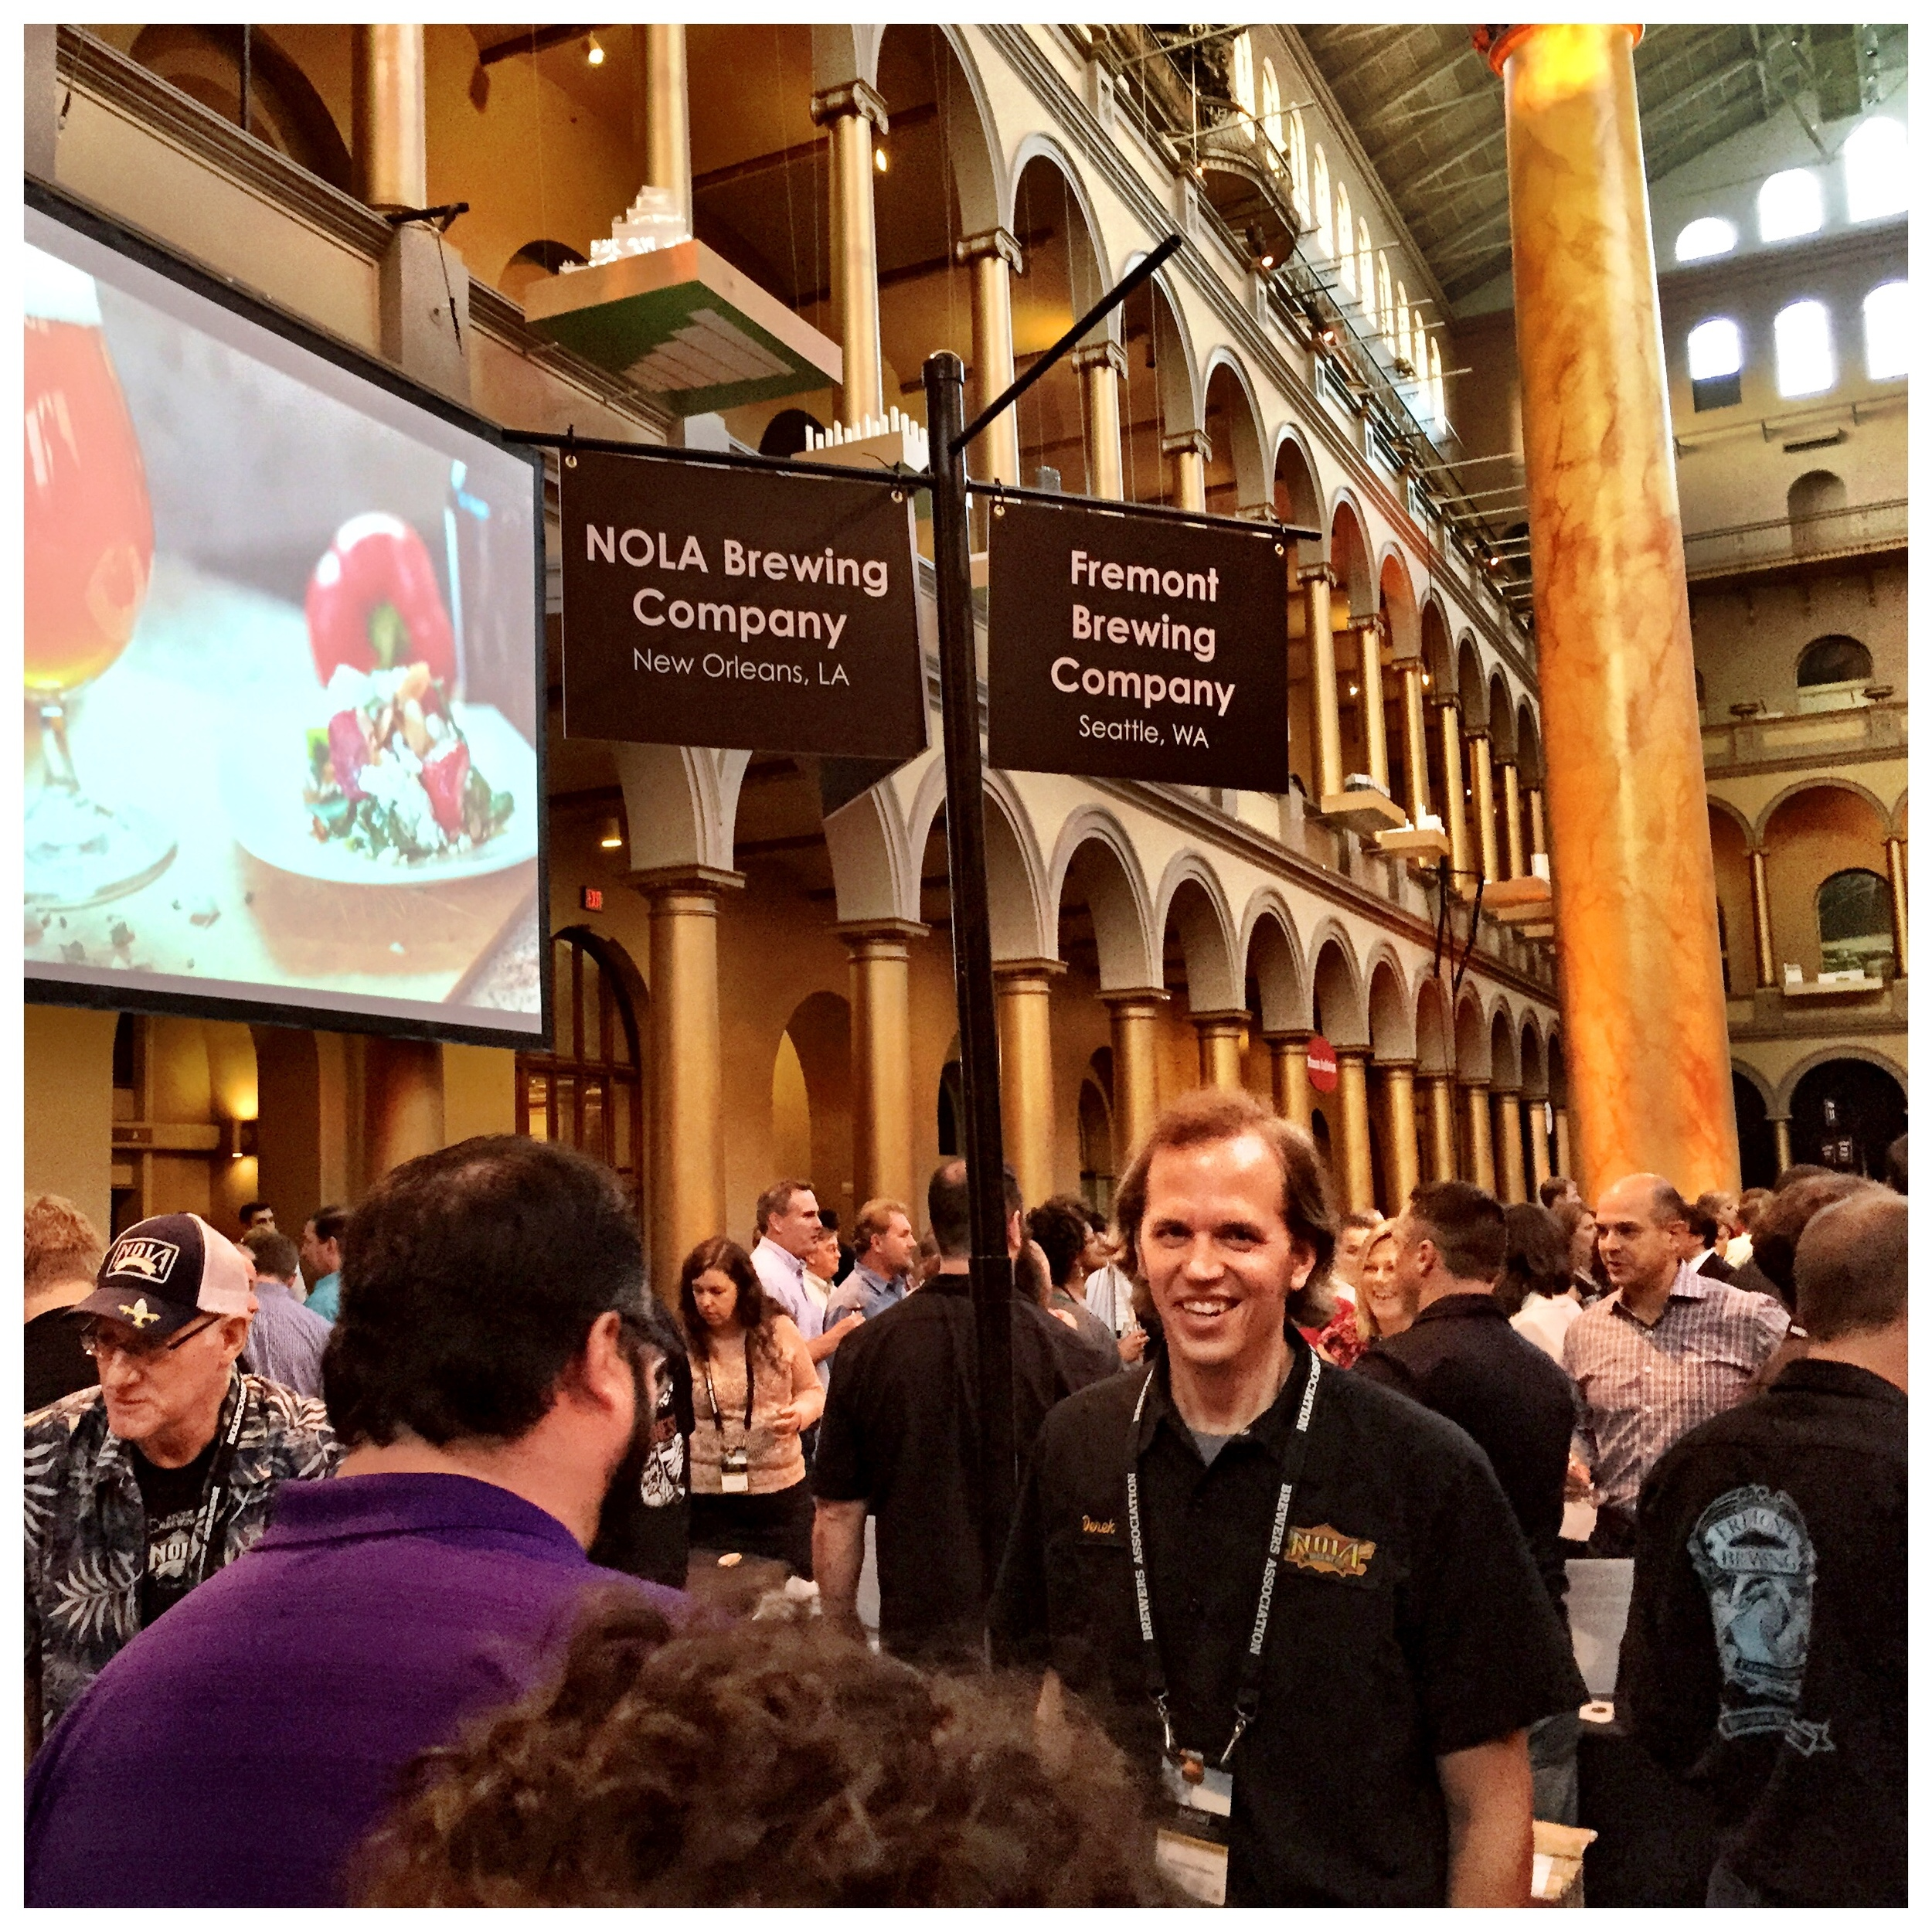 NOLA Brewing Co at SAVOR 2015